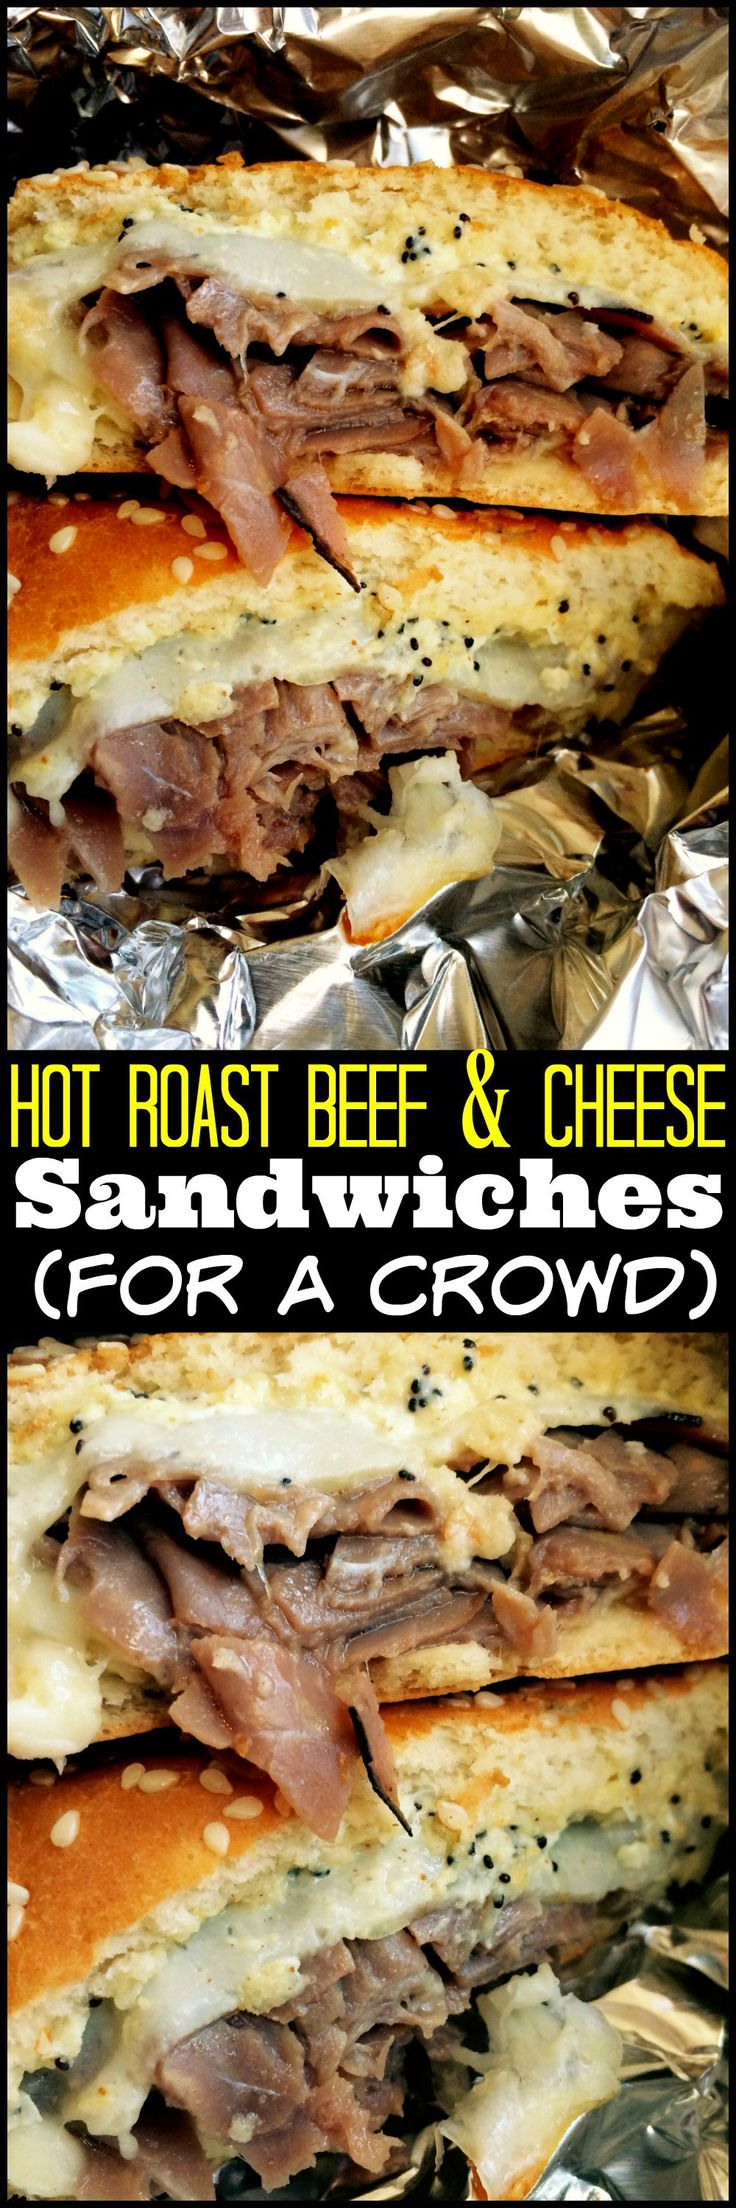 Hot Roast Beef & Cheese Sandwiches (for a crowd) | Aunt Bee's Recipes